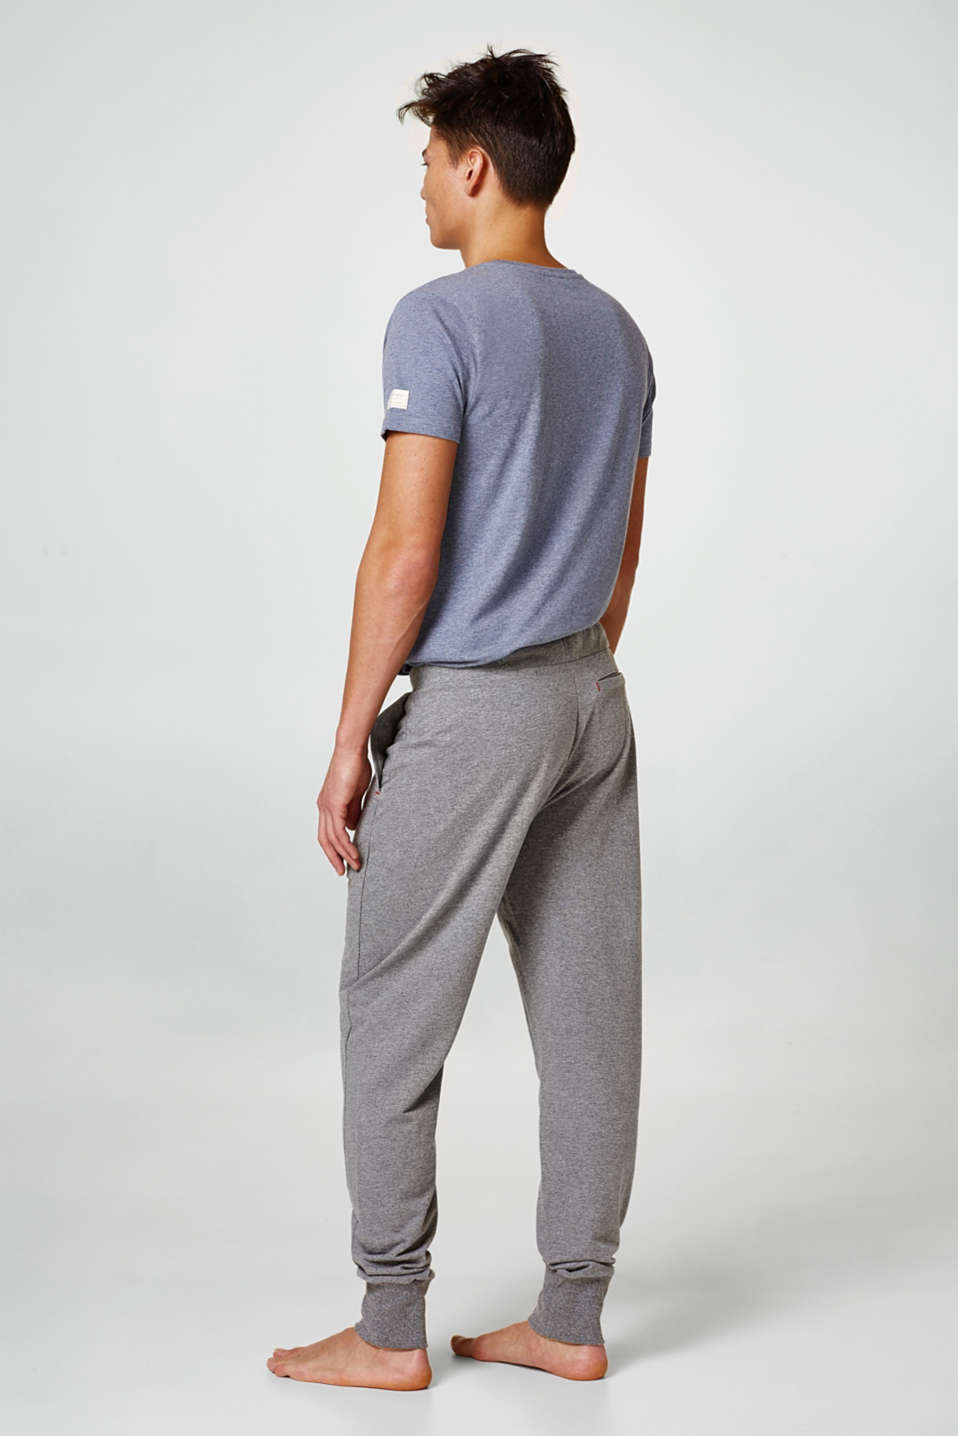 Dense jersey trousers, cotton blend